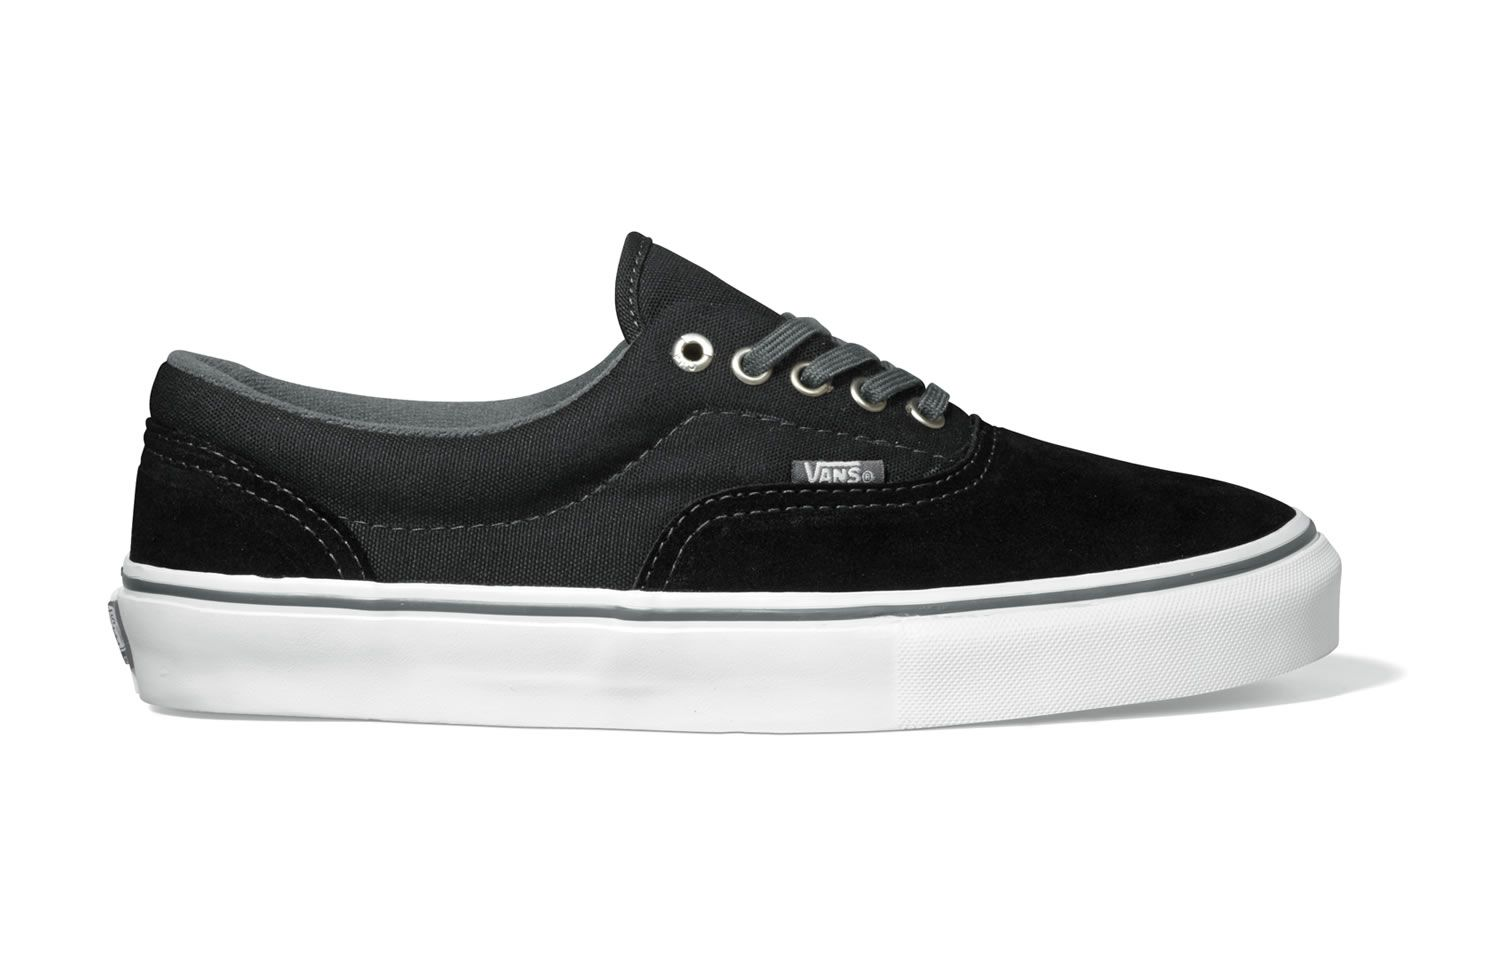 Vans Google Search With Images Vans Black Vans Vans Authentic Sneaker